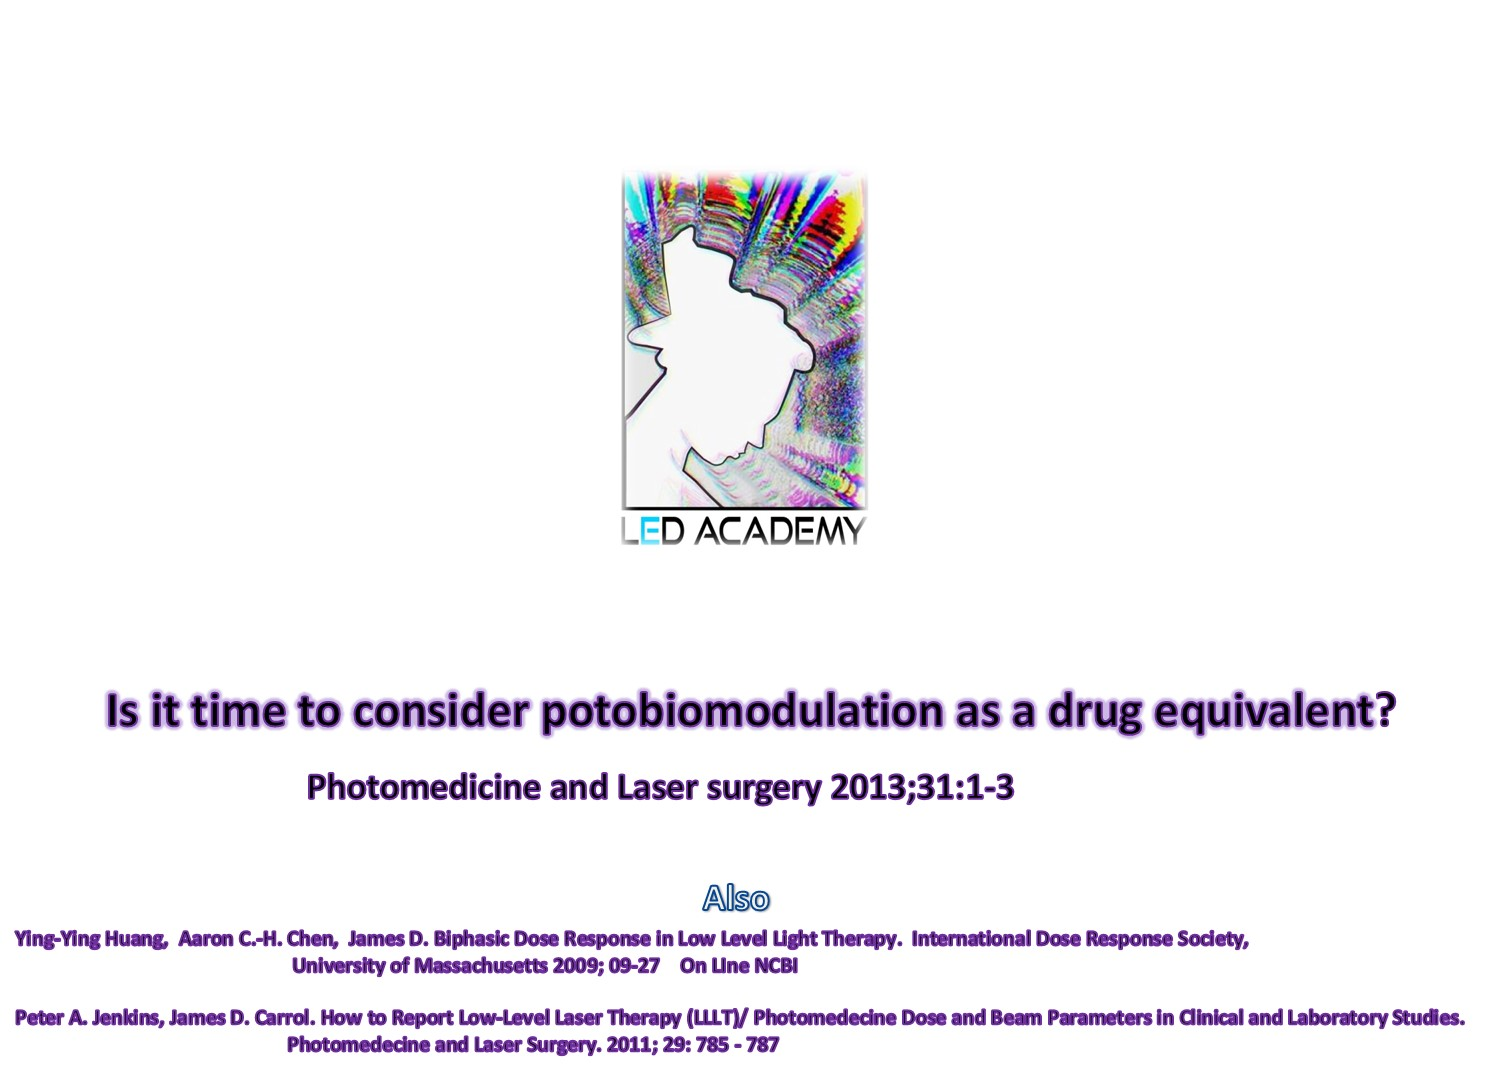 Is It time to Consider Photobiomodulation As a Drug Equivalent? Photomedicine and Laser Surgery 2013; 31: 1  -  Tiina KARU MD